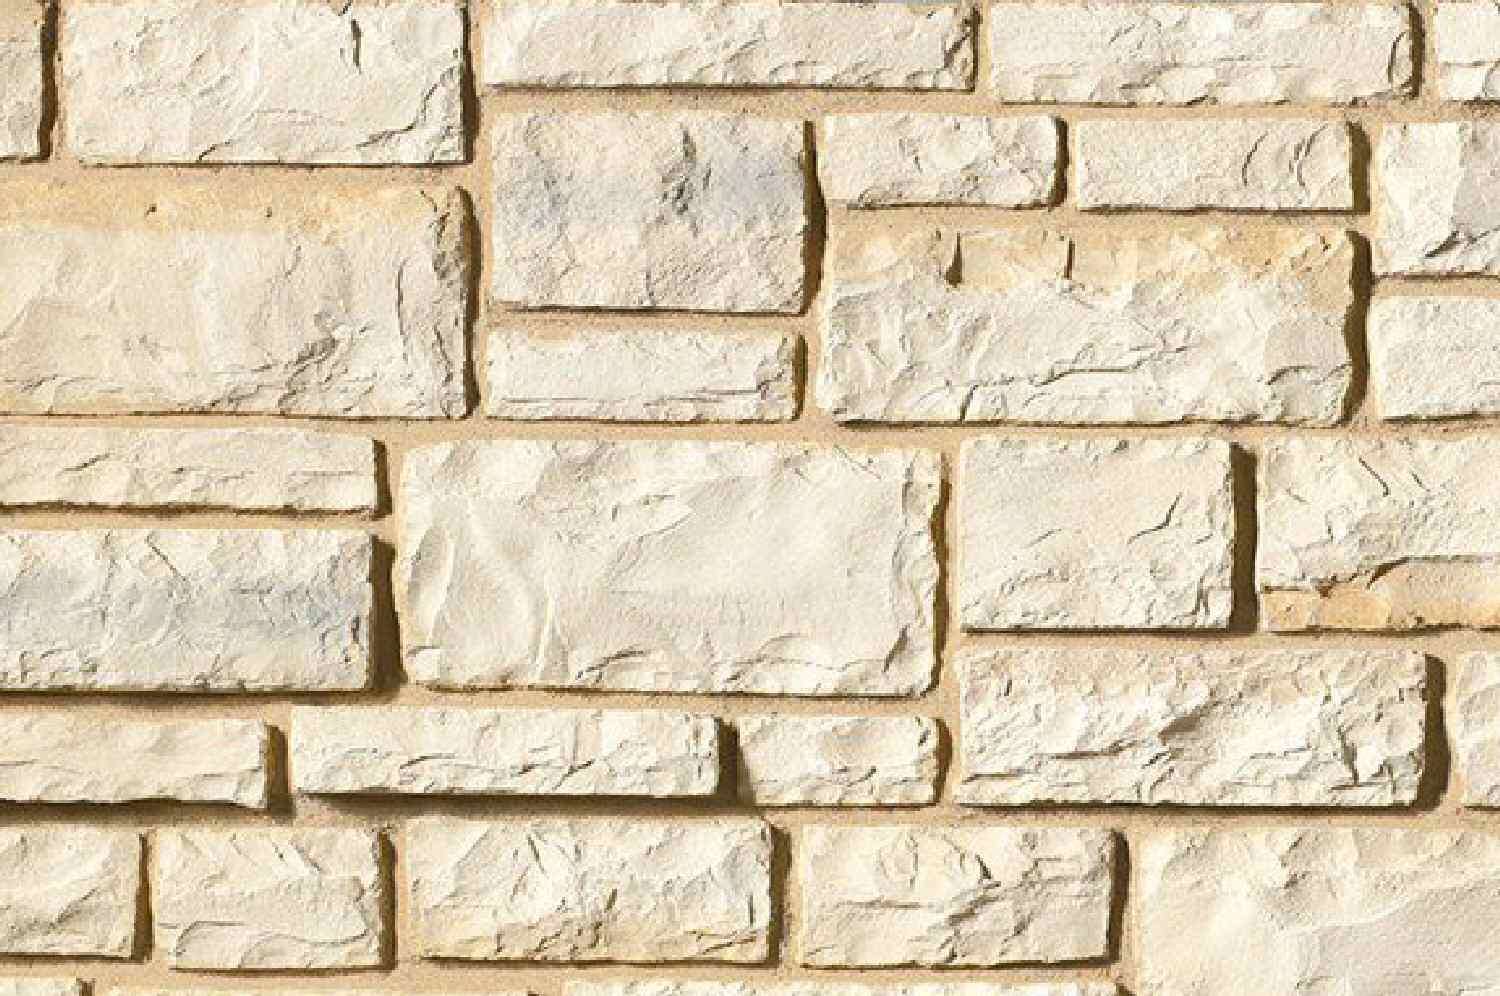 detail of cultered stone product from Boral